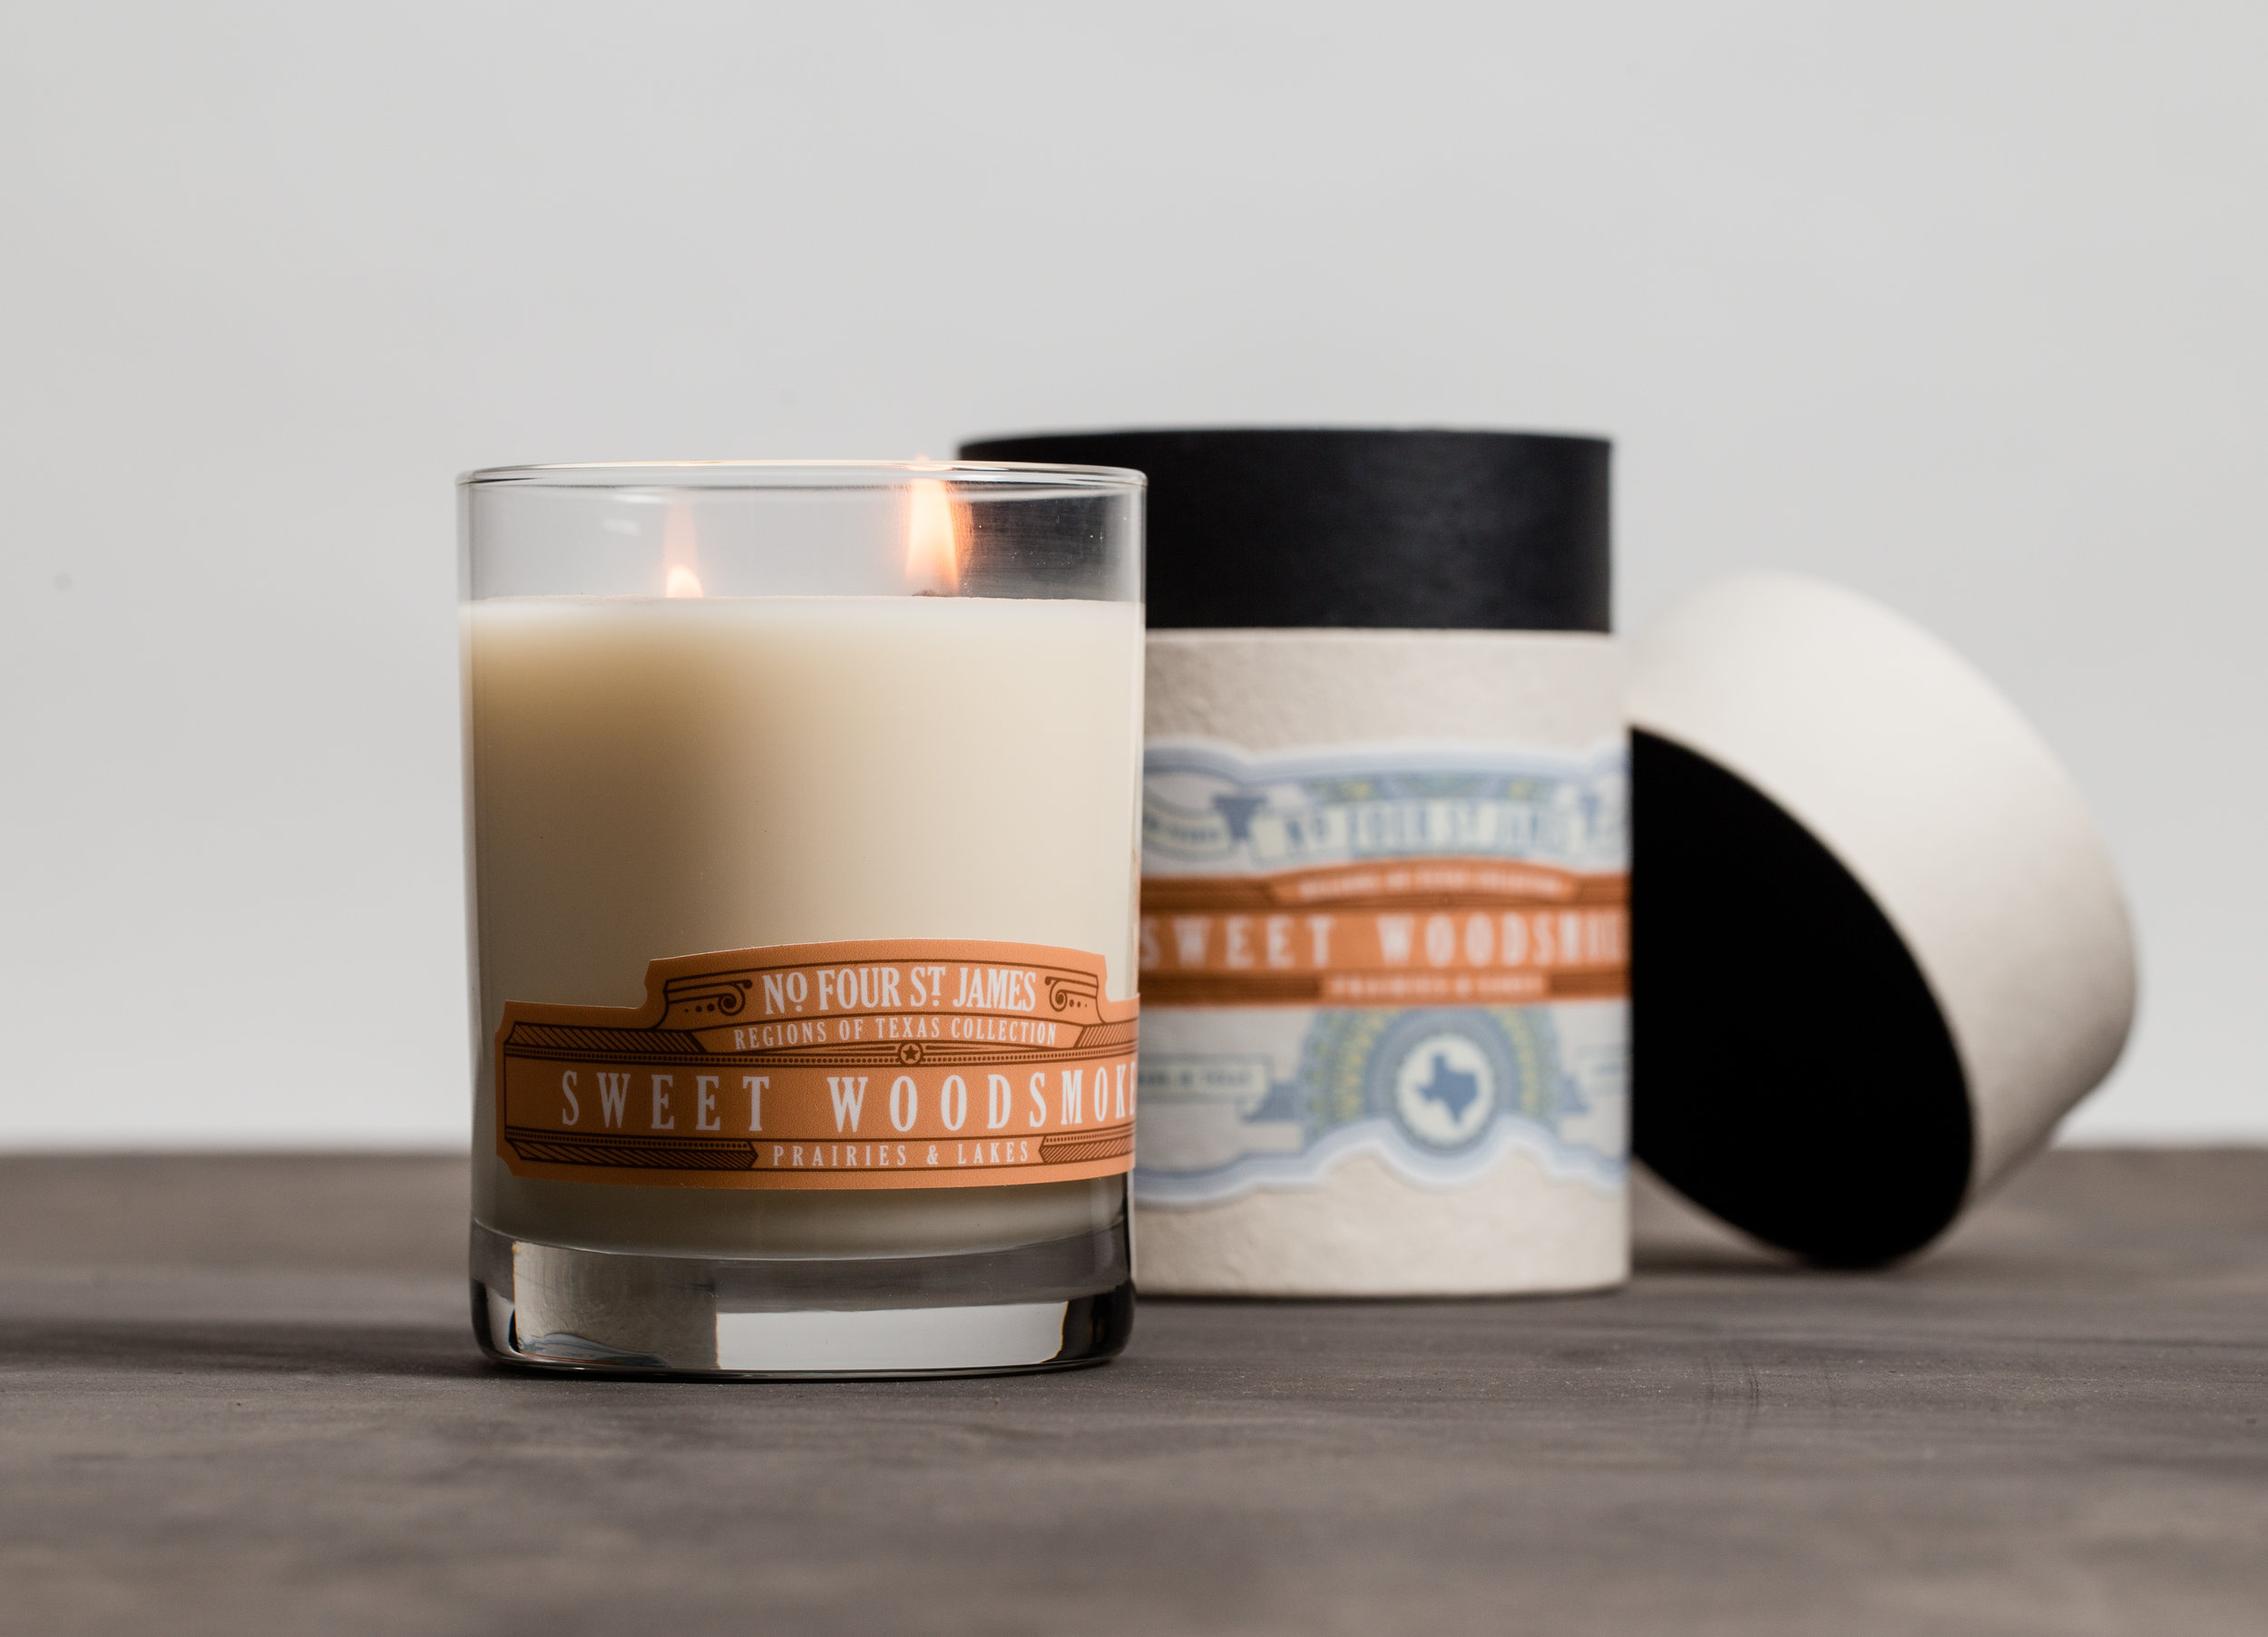 Regions of Texas Candle Collection for No. 4 St. James. Label by Jackson Robinson; candle formulations in collaboration with Carrie Crumbley.